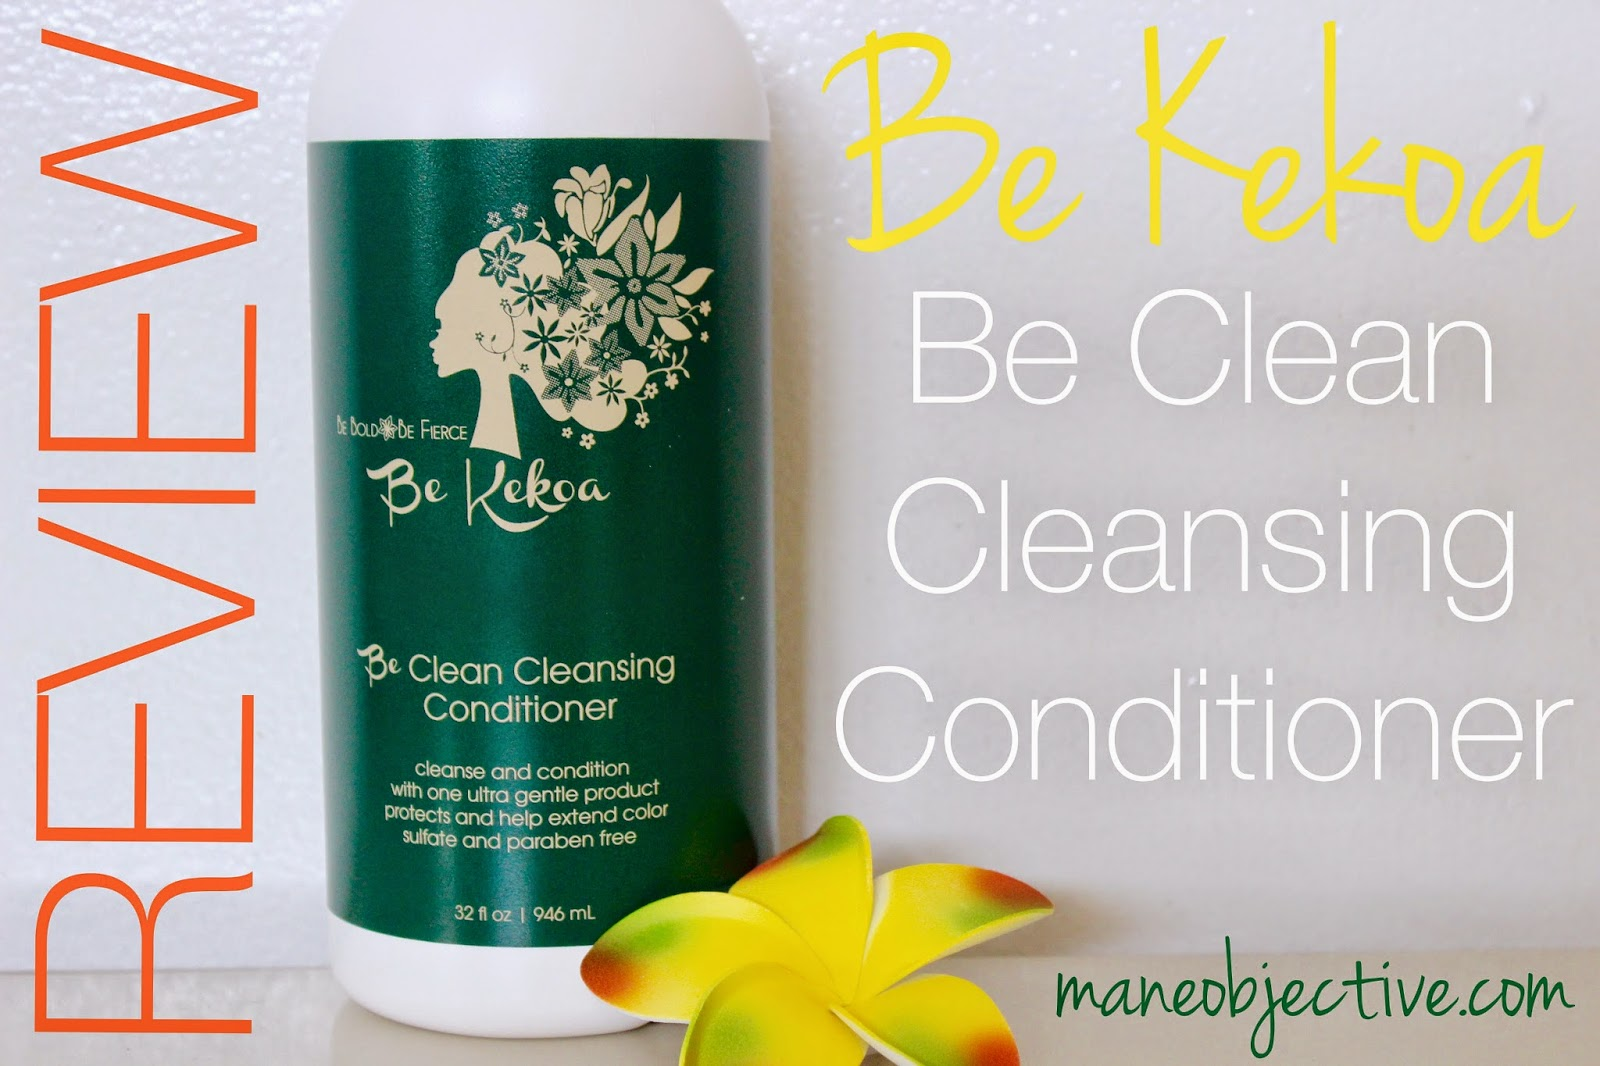 Be Kekoa Be Clean Cleansing Conditioner Review